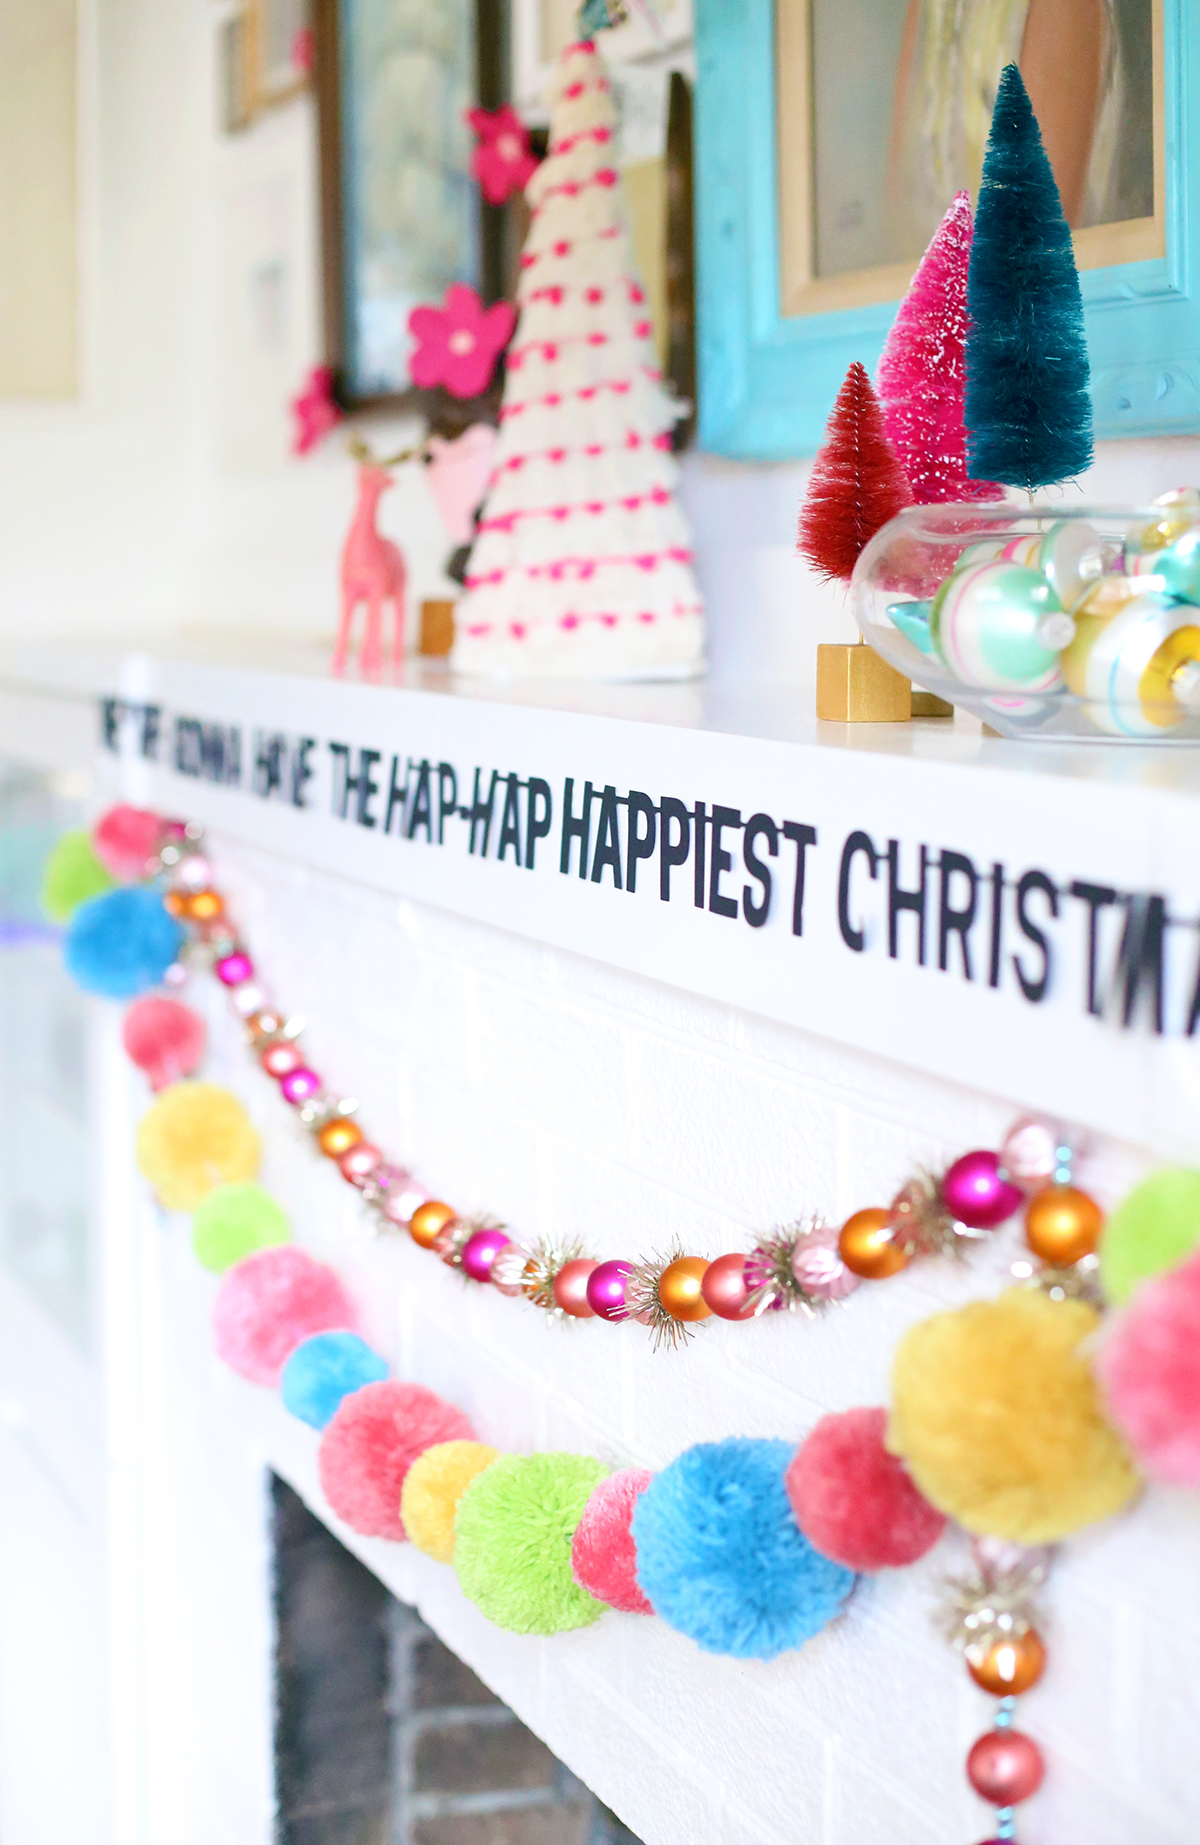 Hap-Hap Happiest Christmas Banner - thepapermama.com